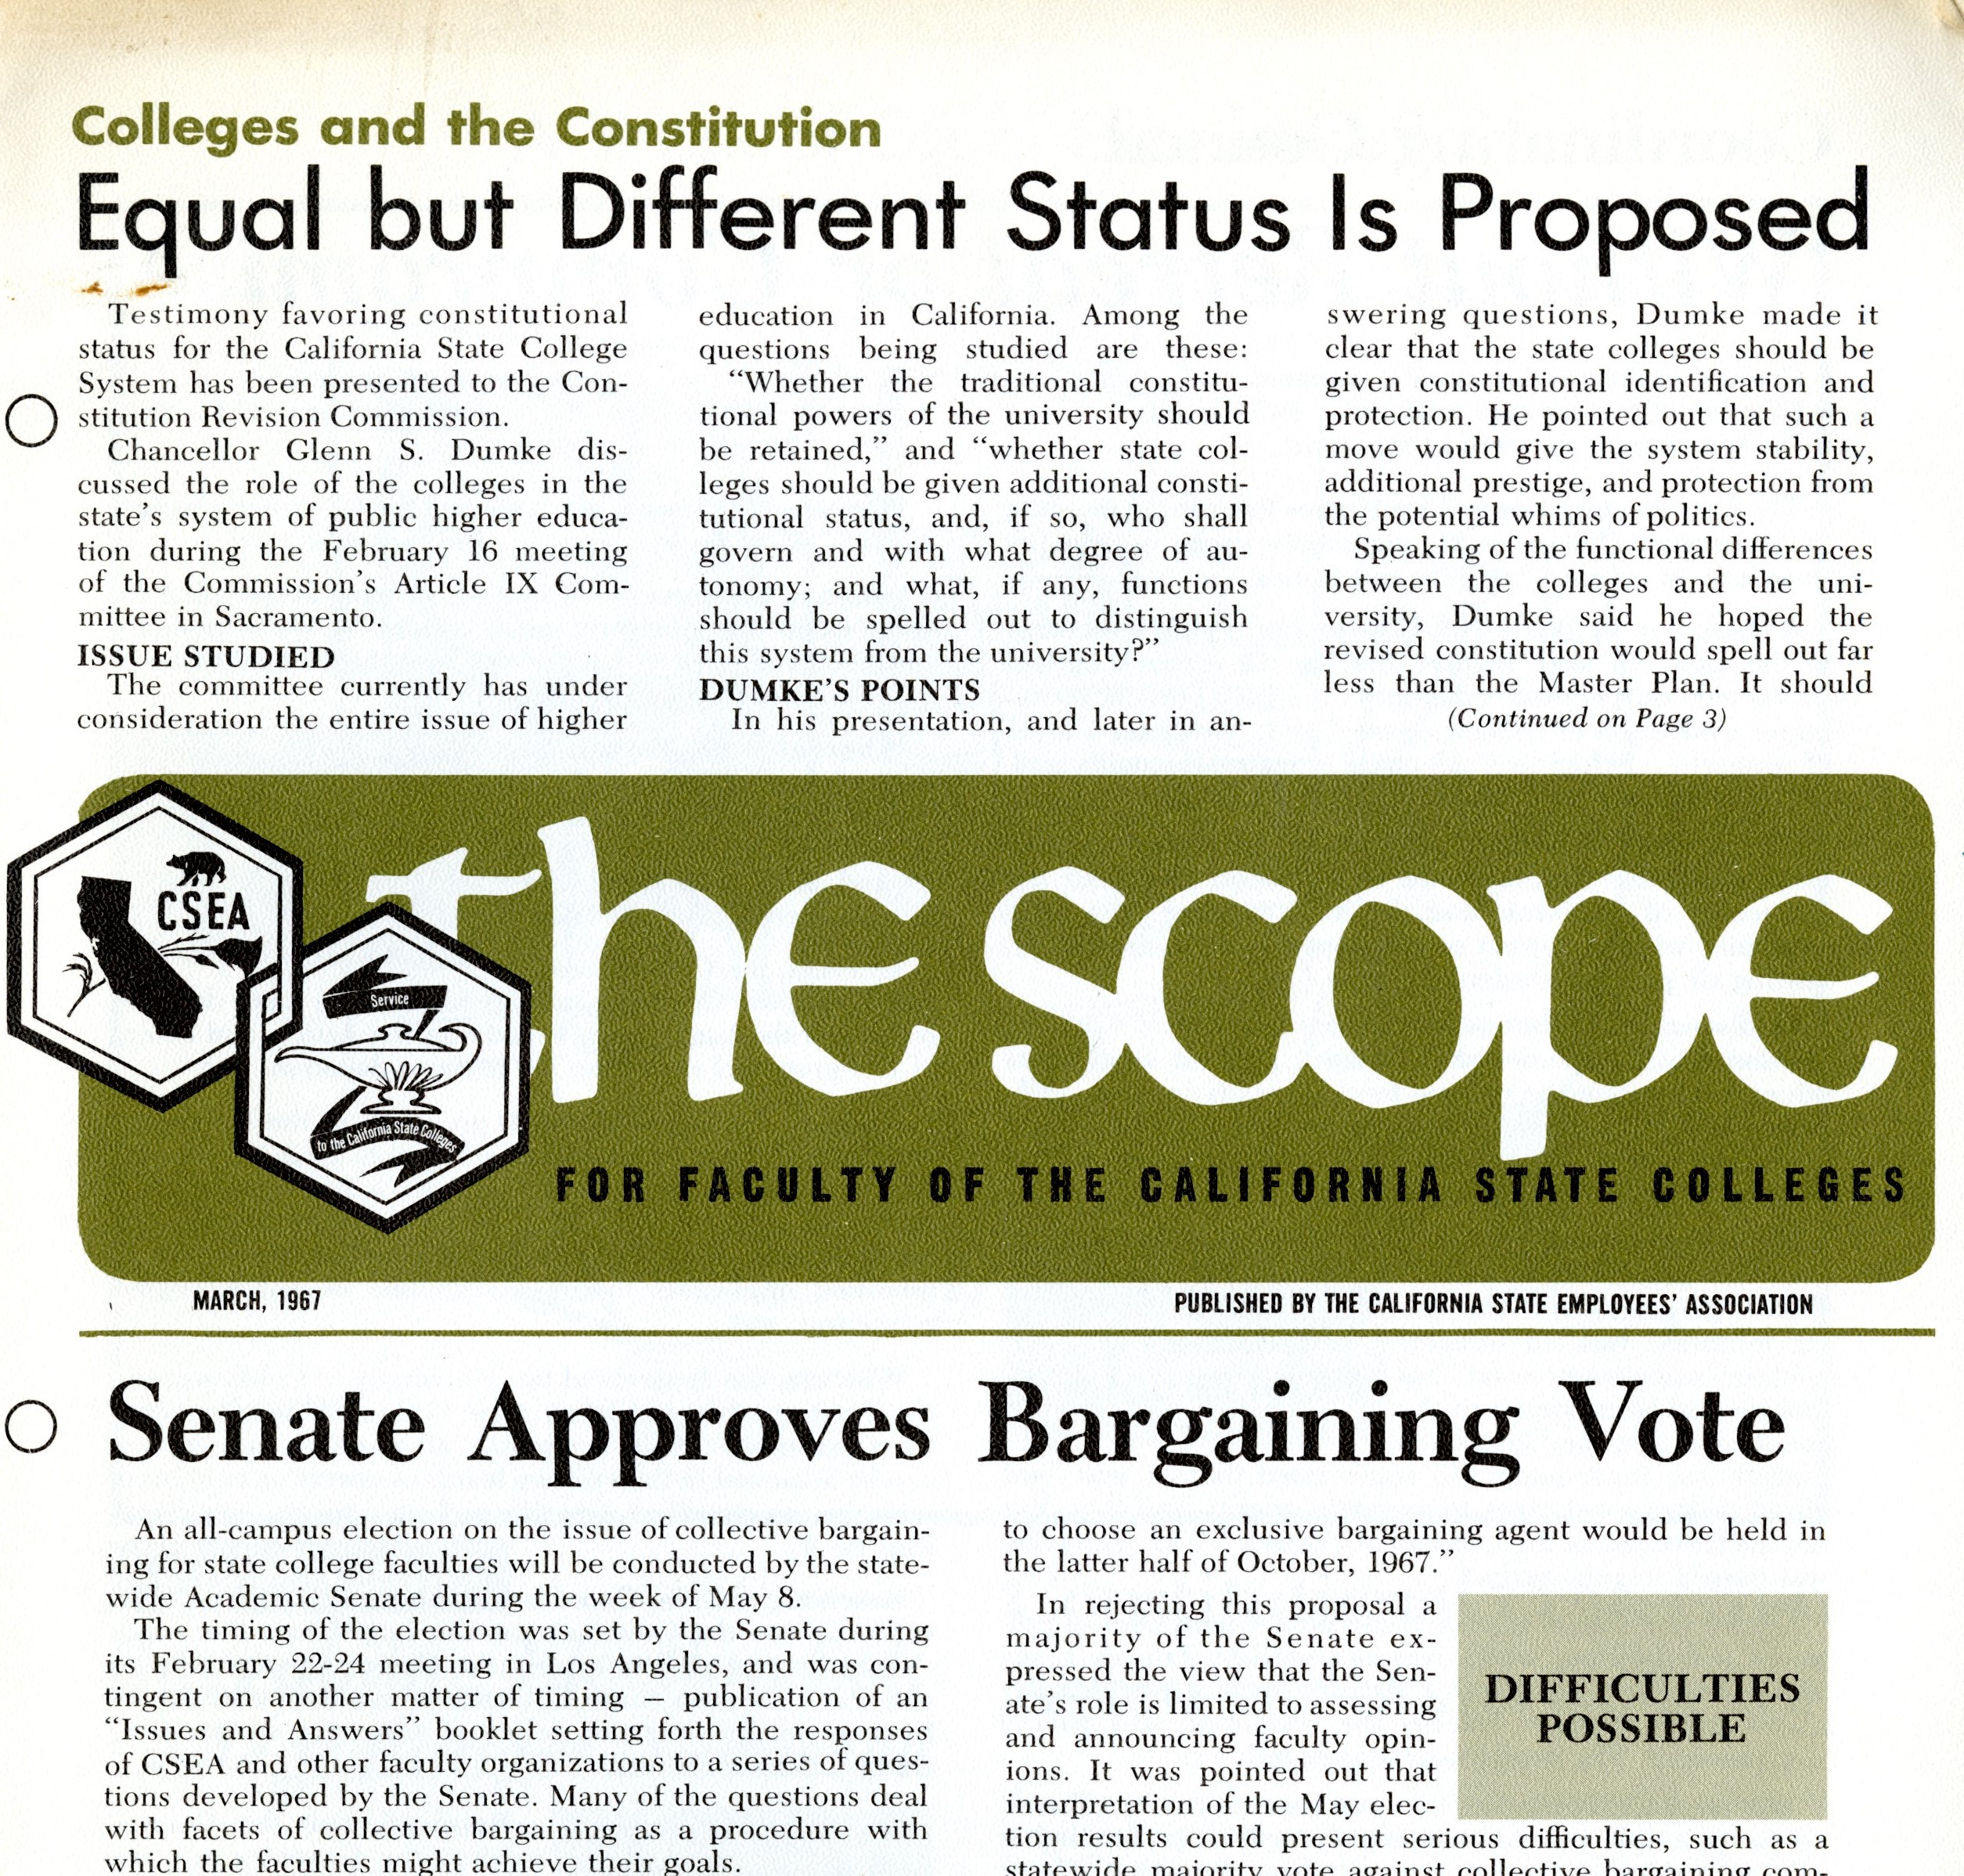 The Scope, Newsletter for Faculty of the California State Colleges